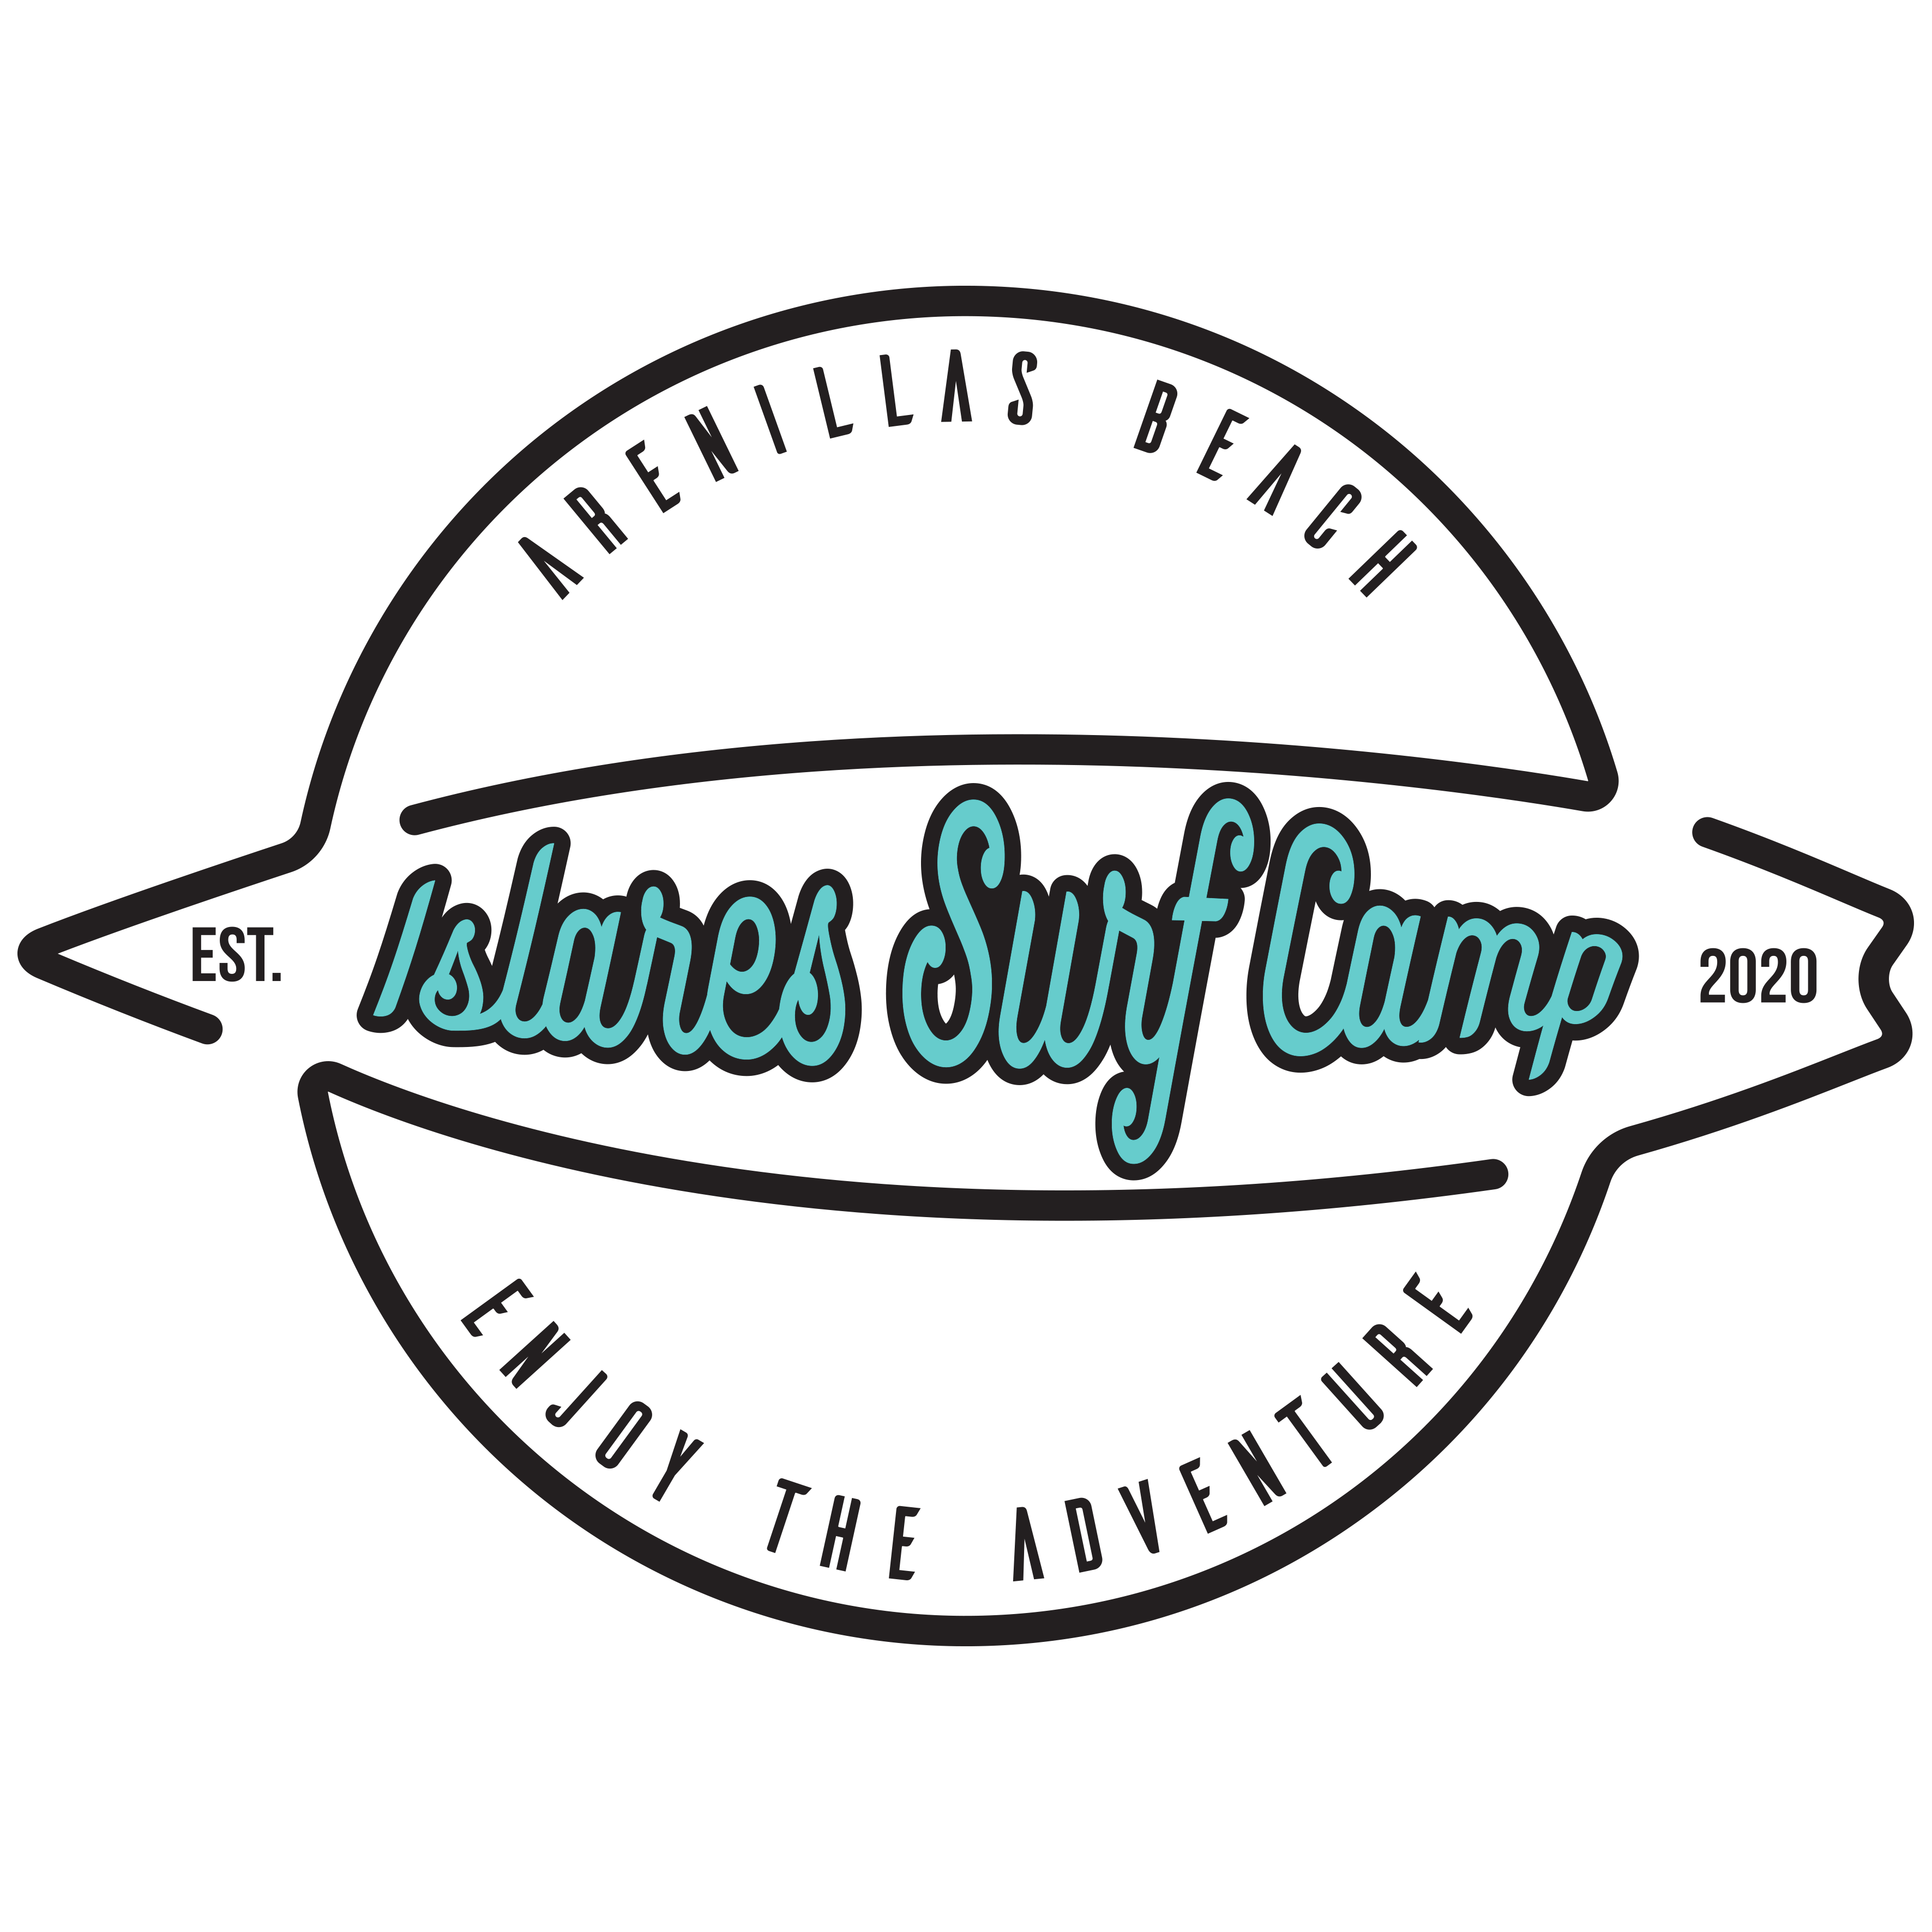 Islares Surf Camp